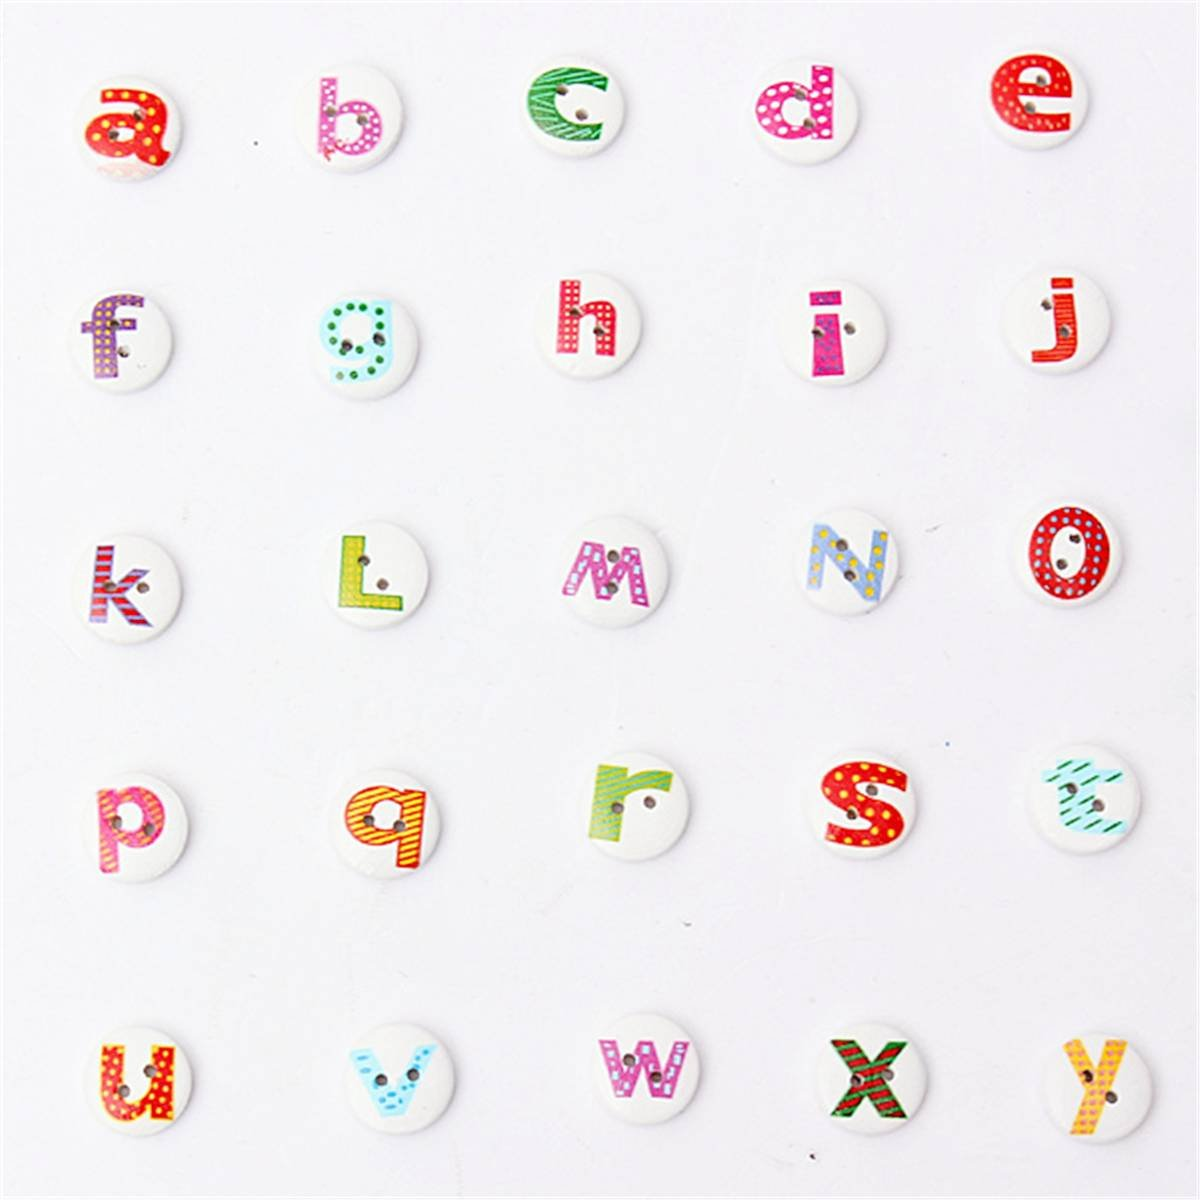 TFBC 100Pcs Mixed Painted Letter Alphabet Wooden Sewing Button Scrapbooking